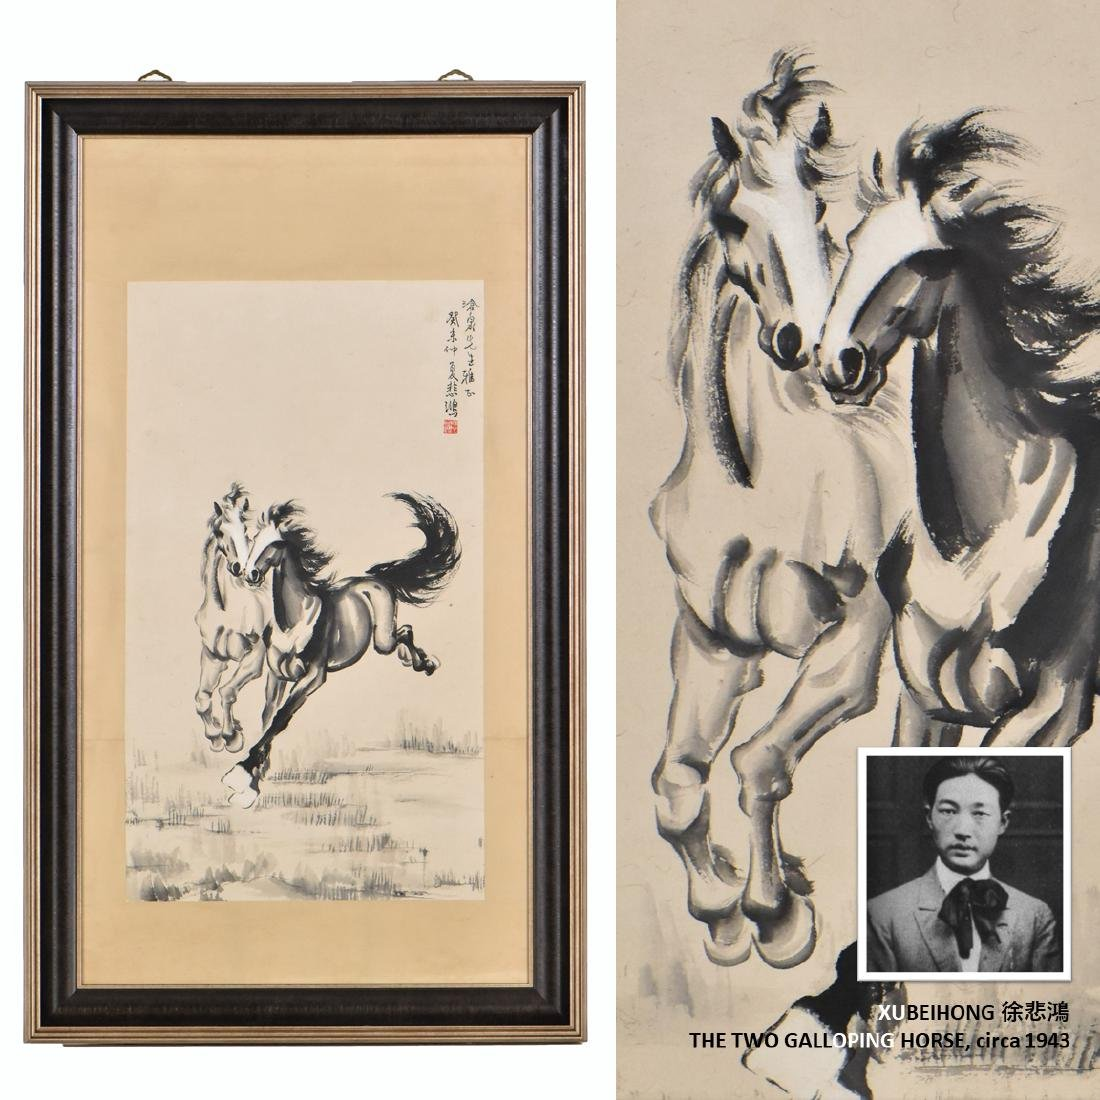 XUBEIHONG, FRAMED PAINTING 'TWO GALLOPING HORSES', 1943